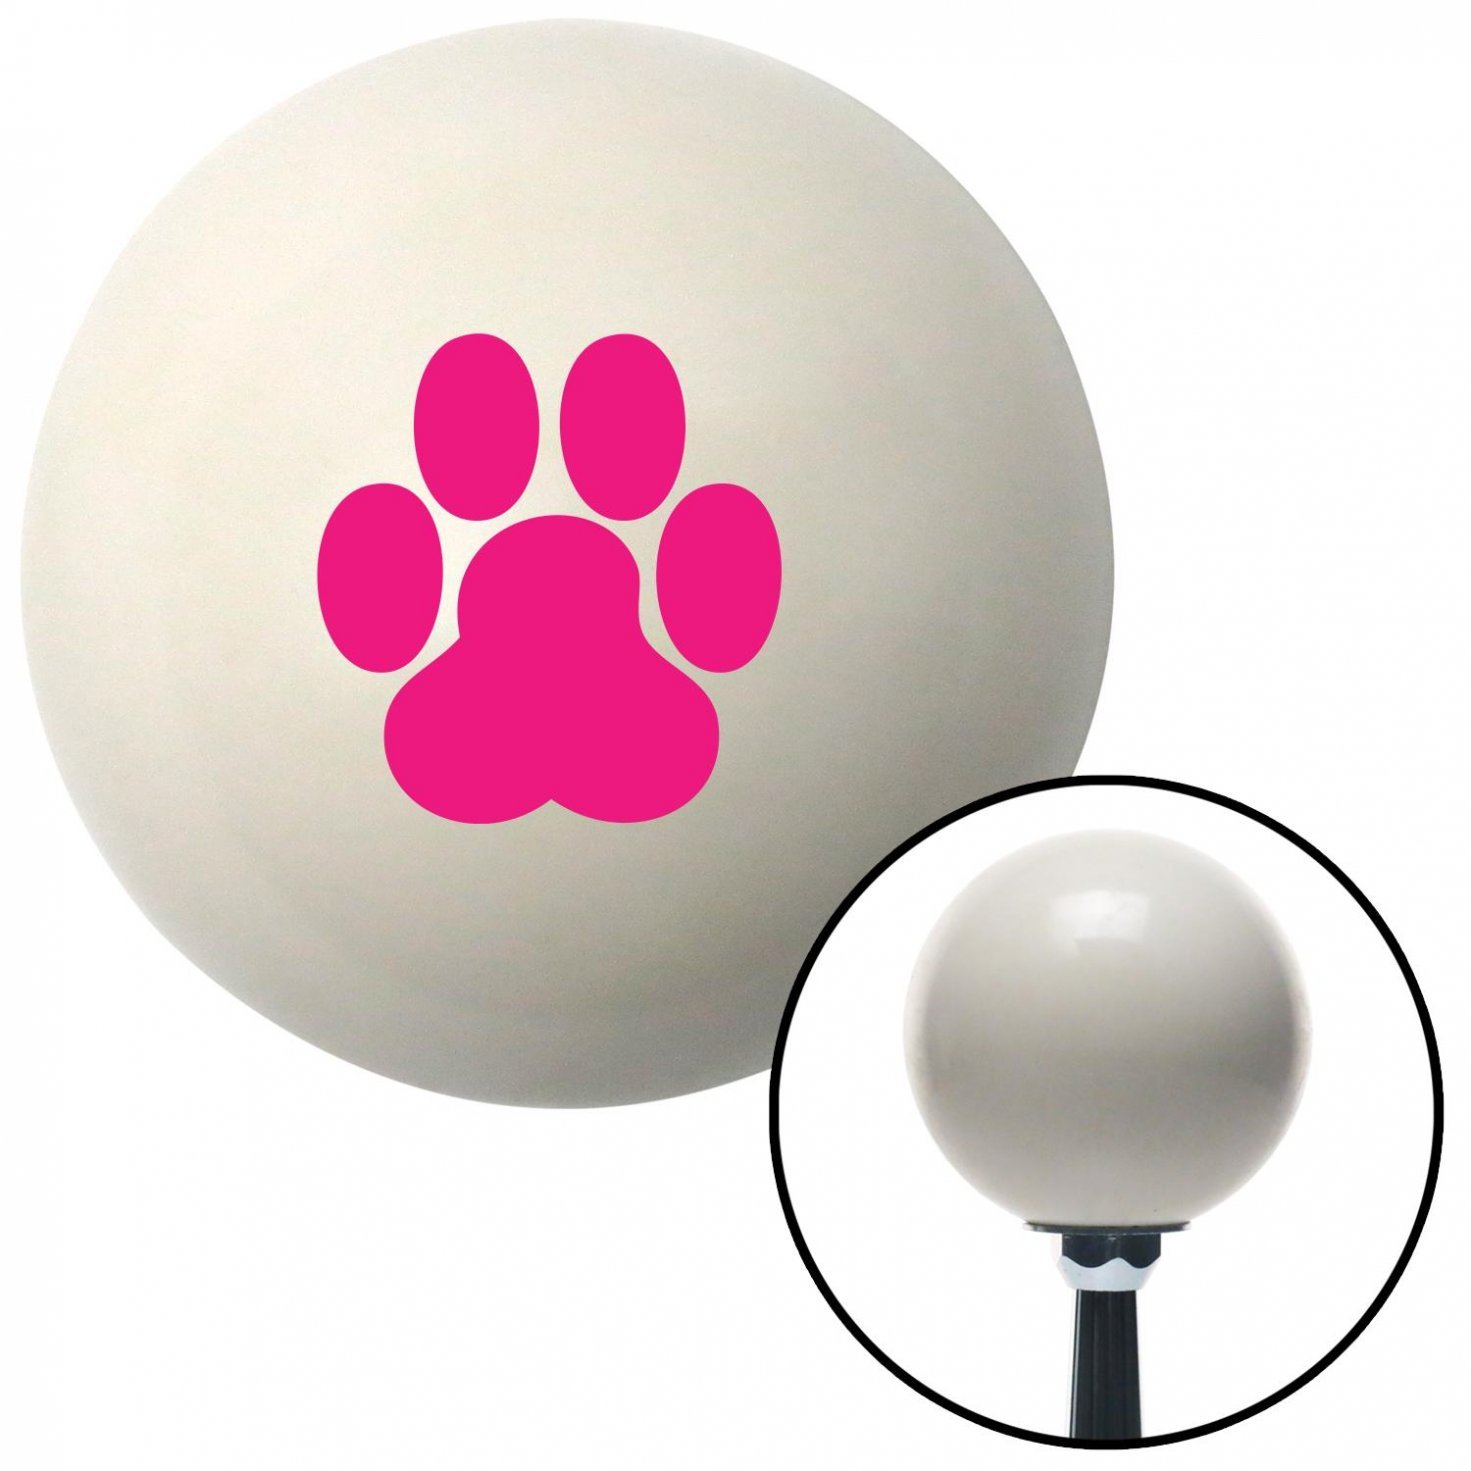 Pink Pawprint American Shifter 41283 Ivory Shift Knob with 16mm x 1.5 Insert